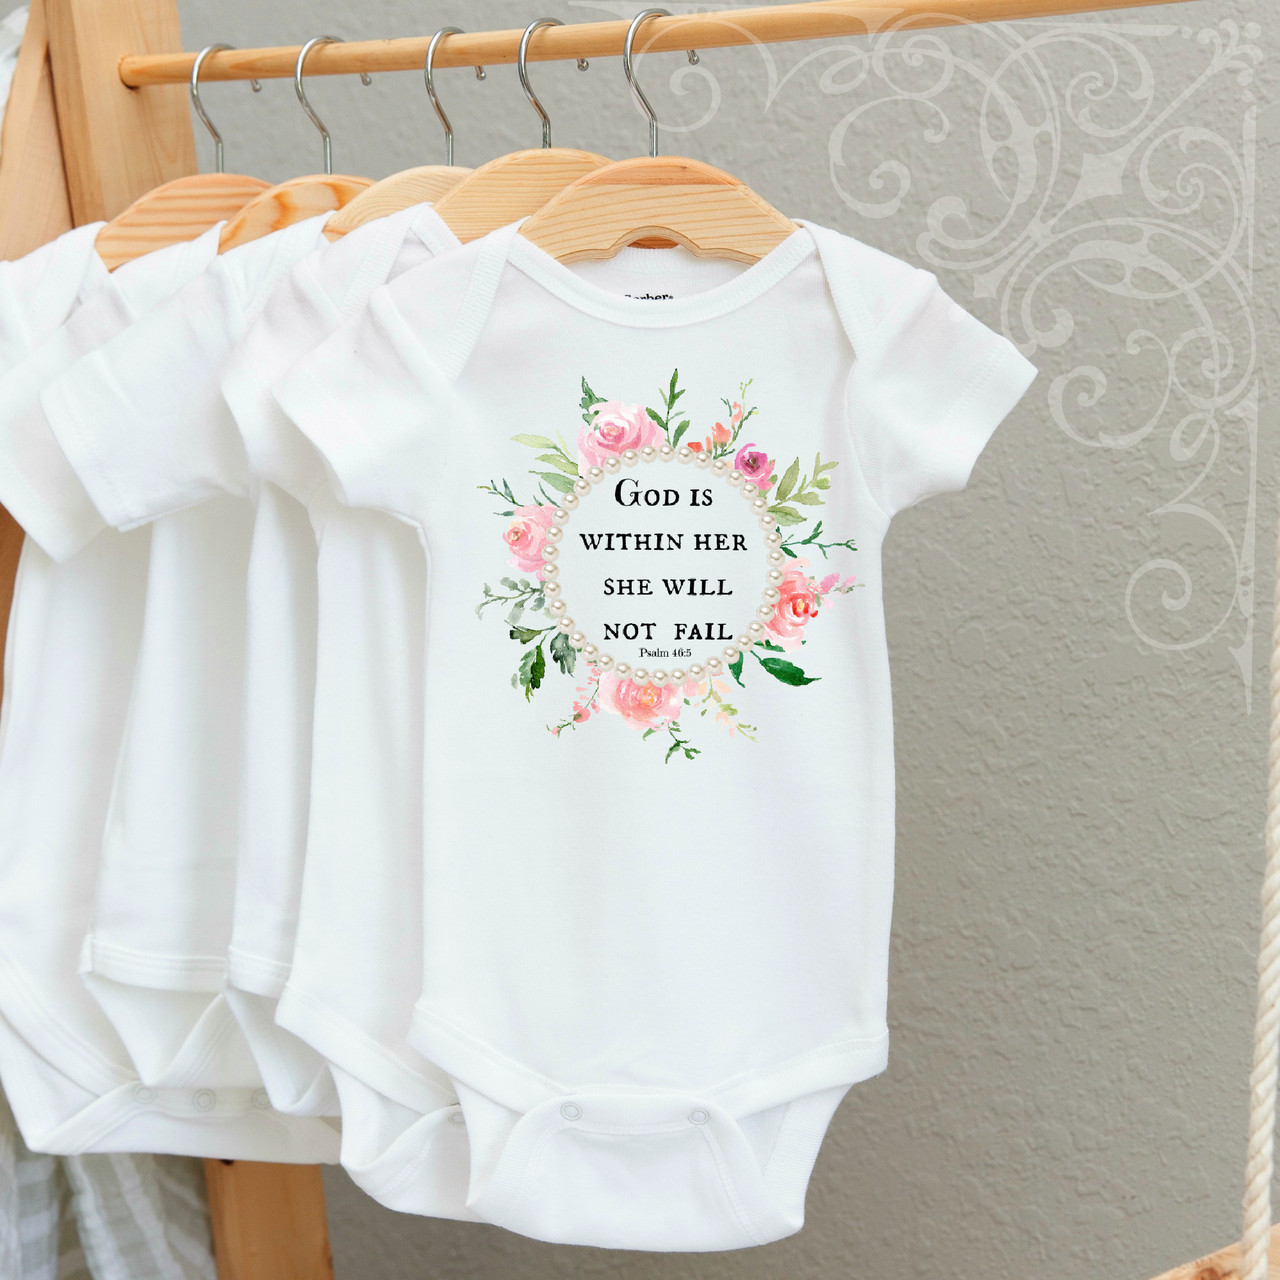 00-30CR God is Within Her Onesie  6-12 Months (with crystals)